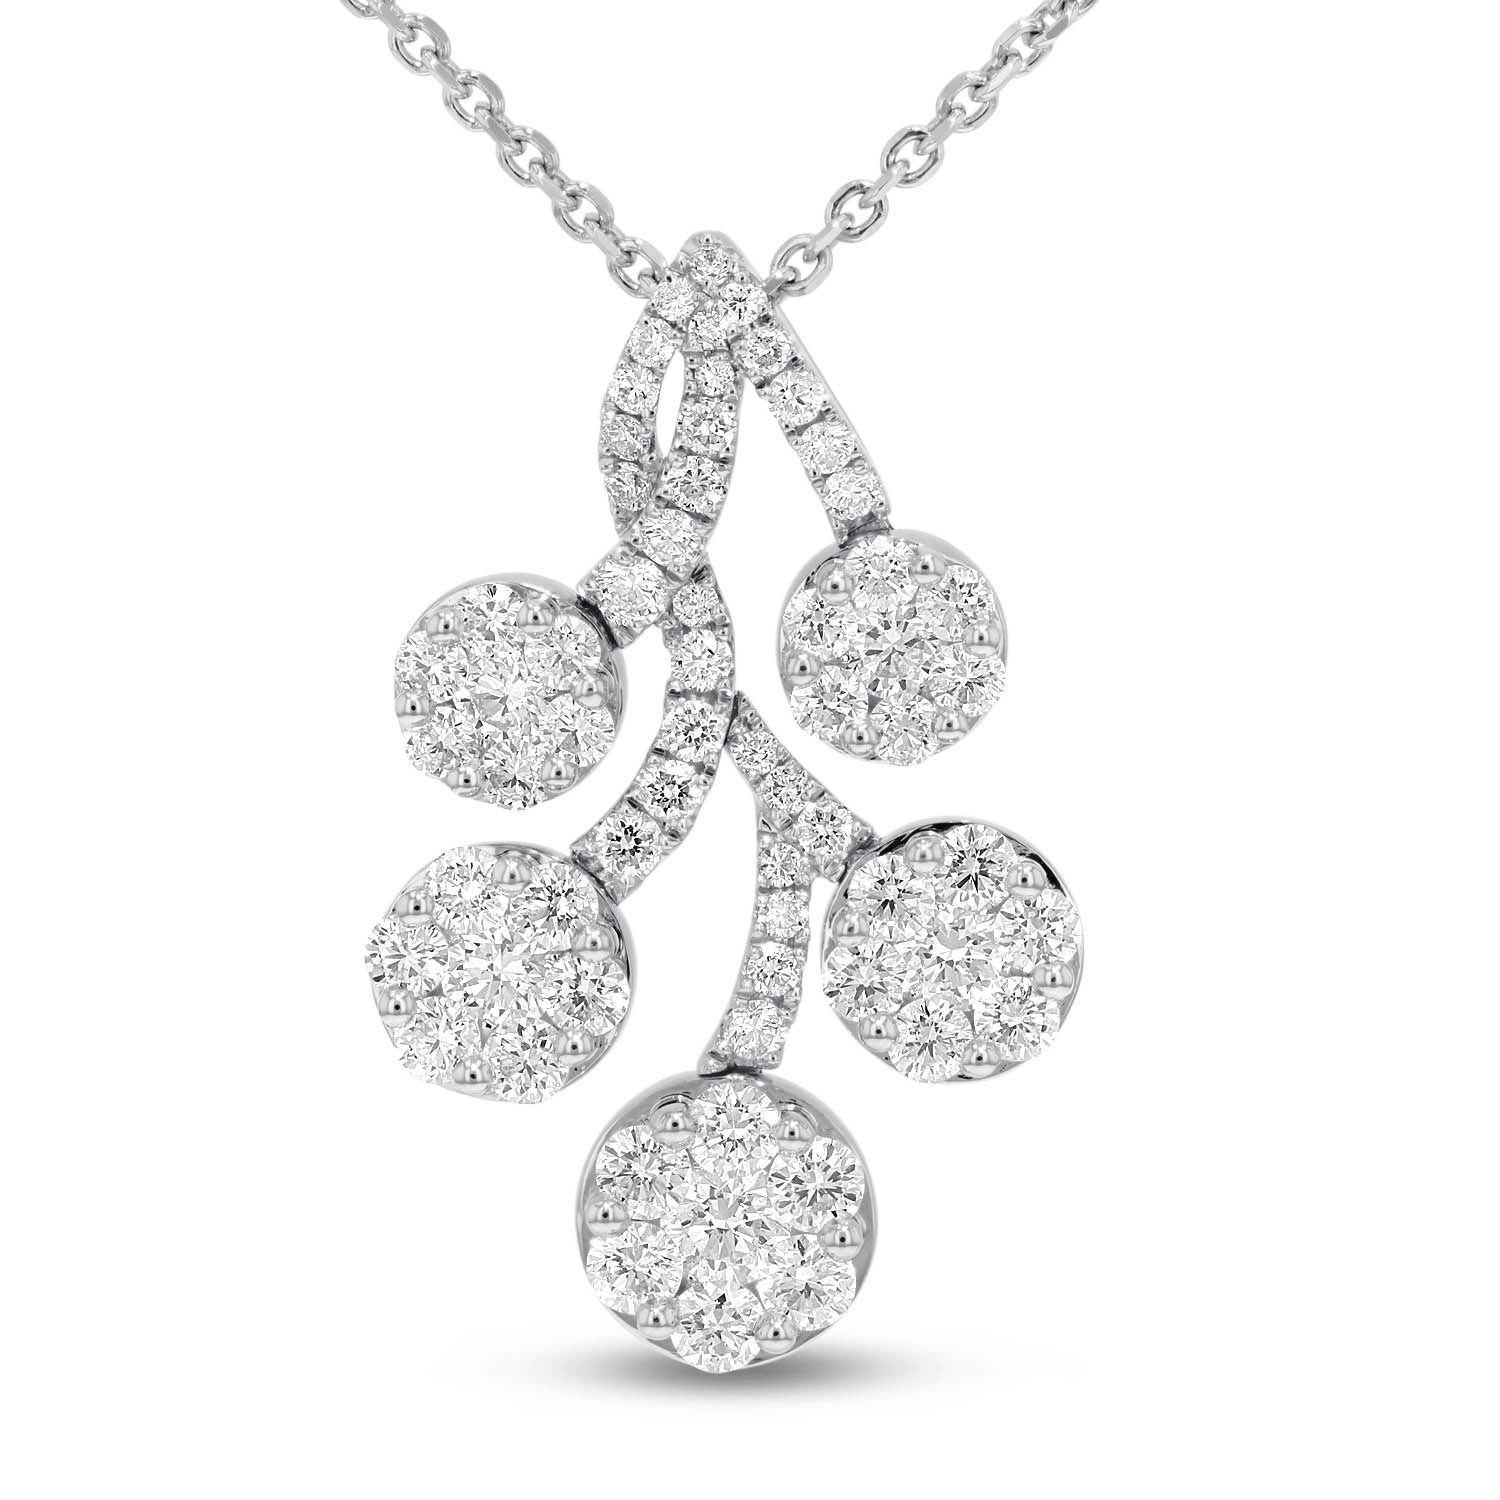 18K White Gold Diamond Pendant, 2.59 Carats